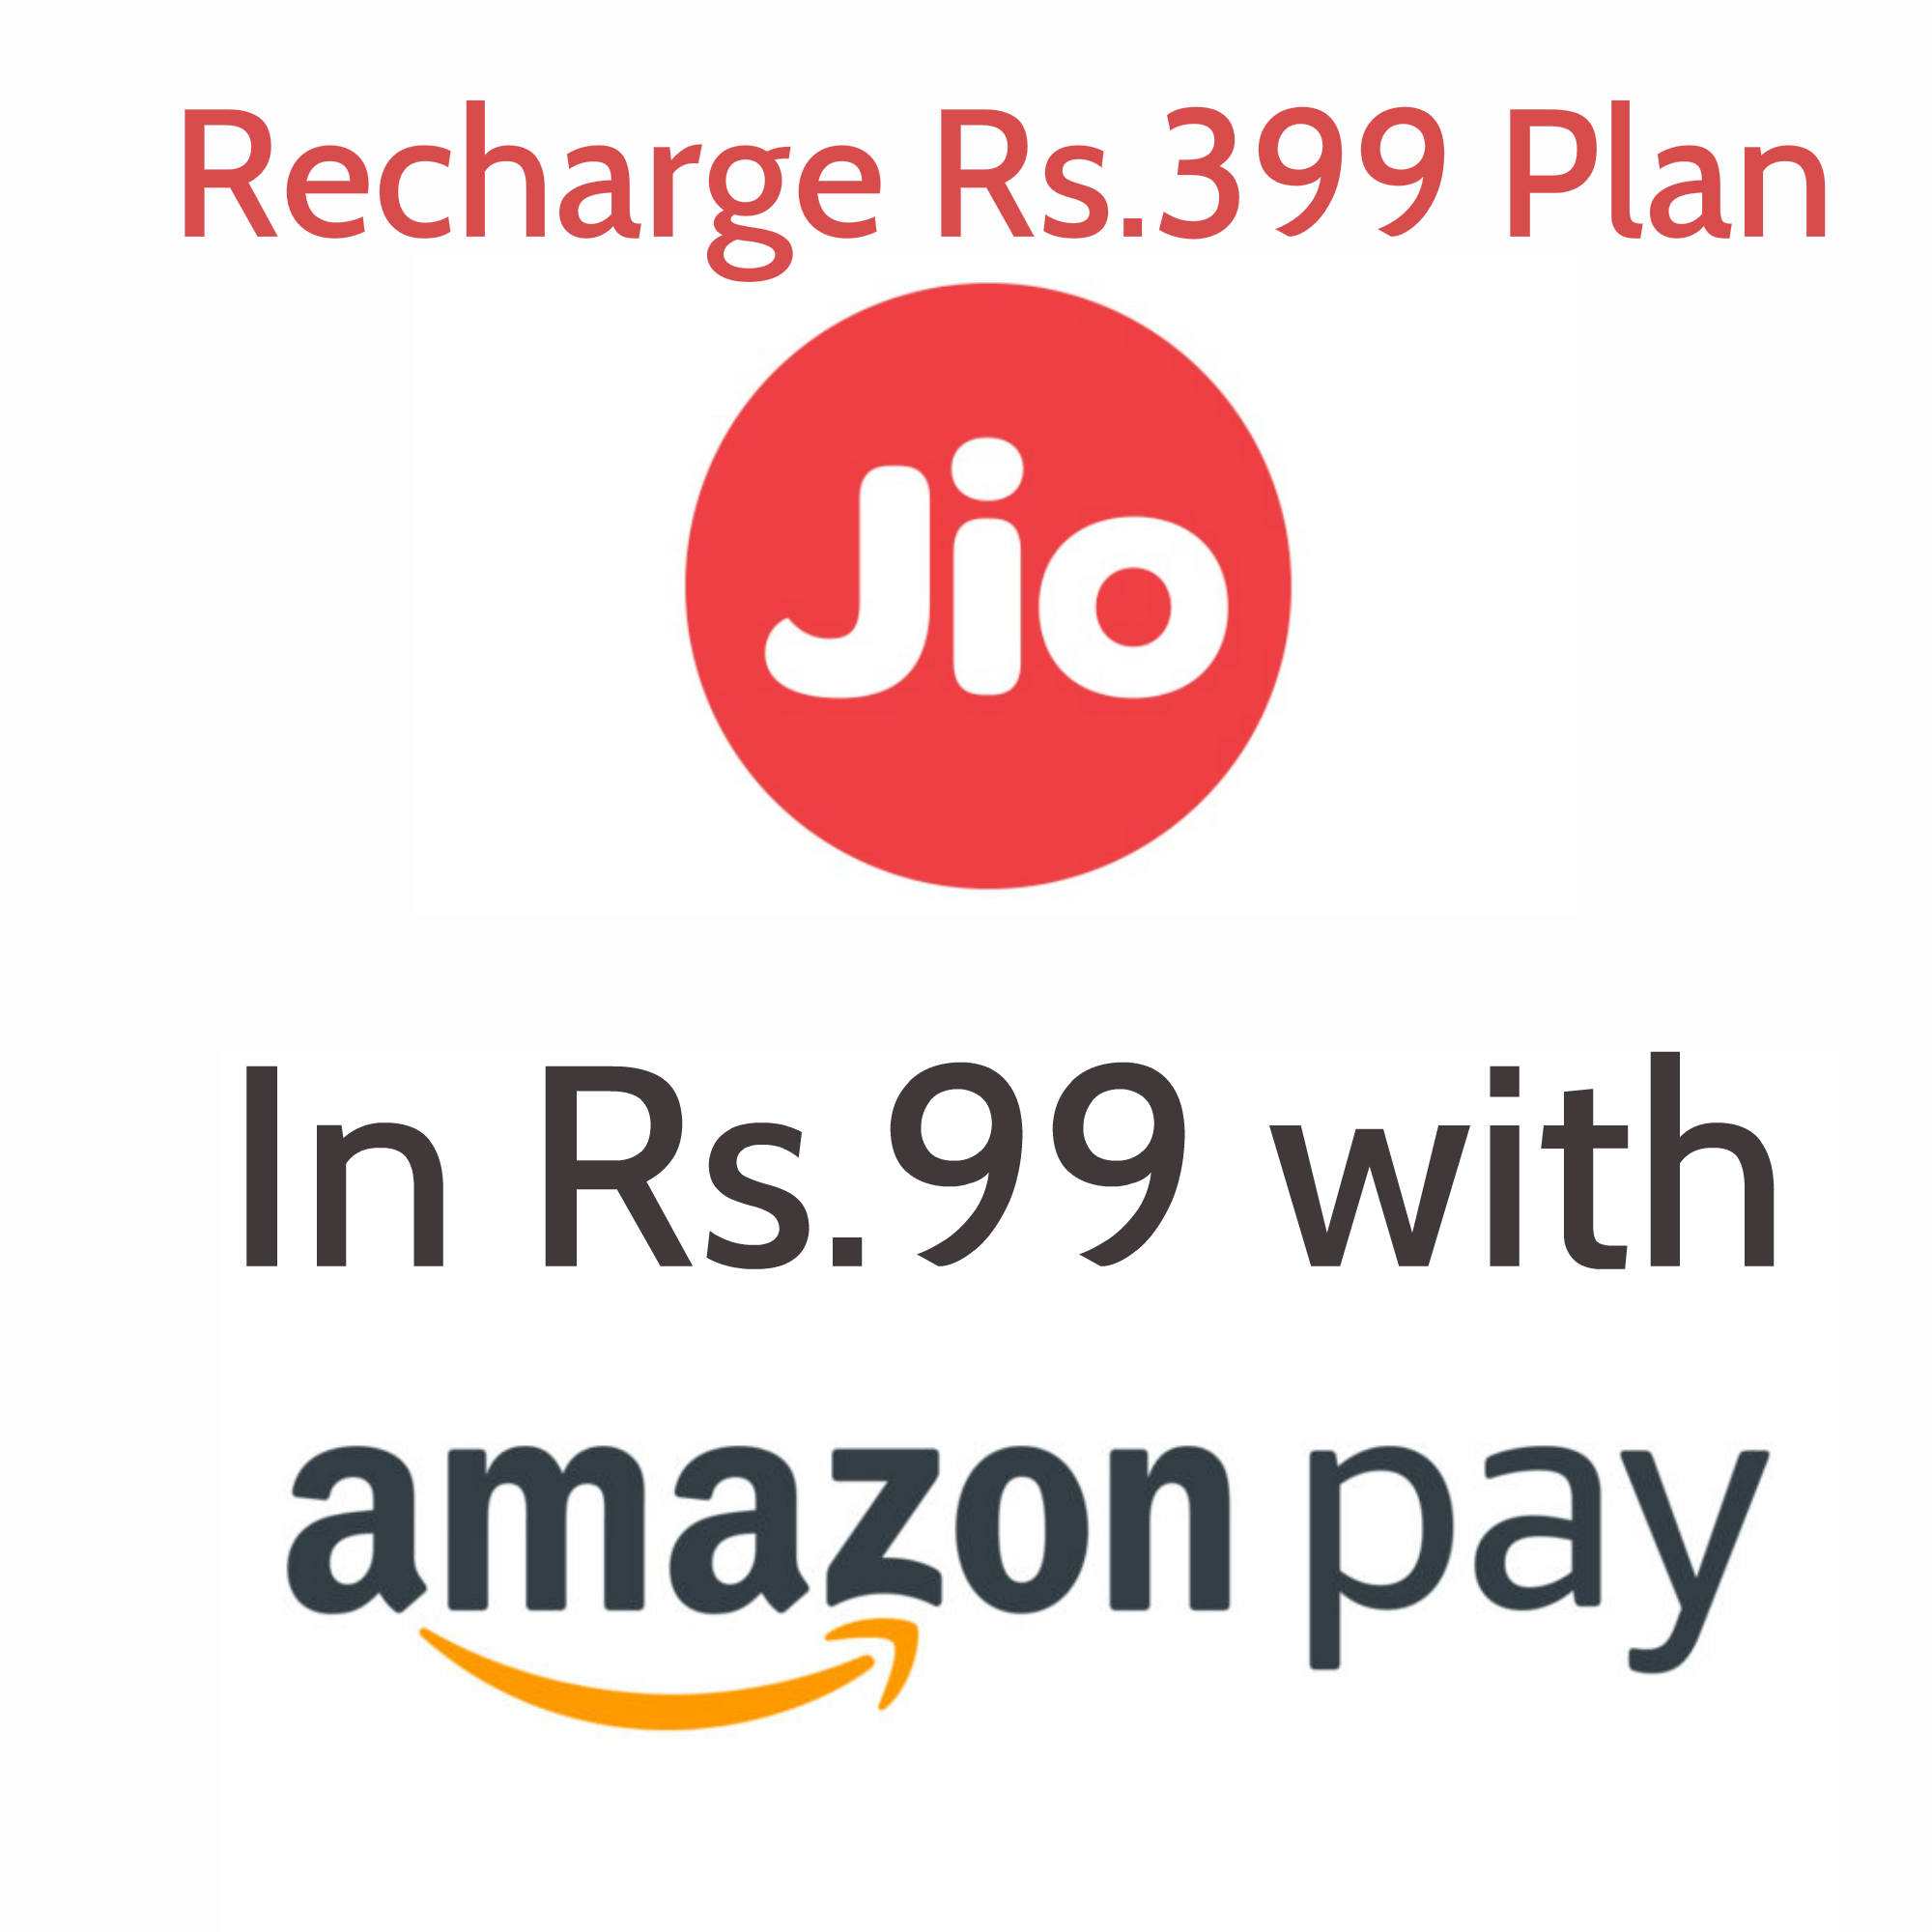 Get Rs.399 Jio Recharge in Rs.99 from Amazon Pay